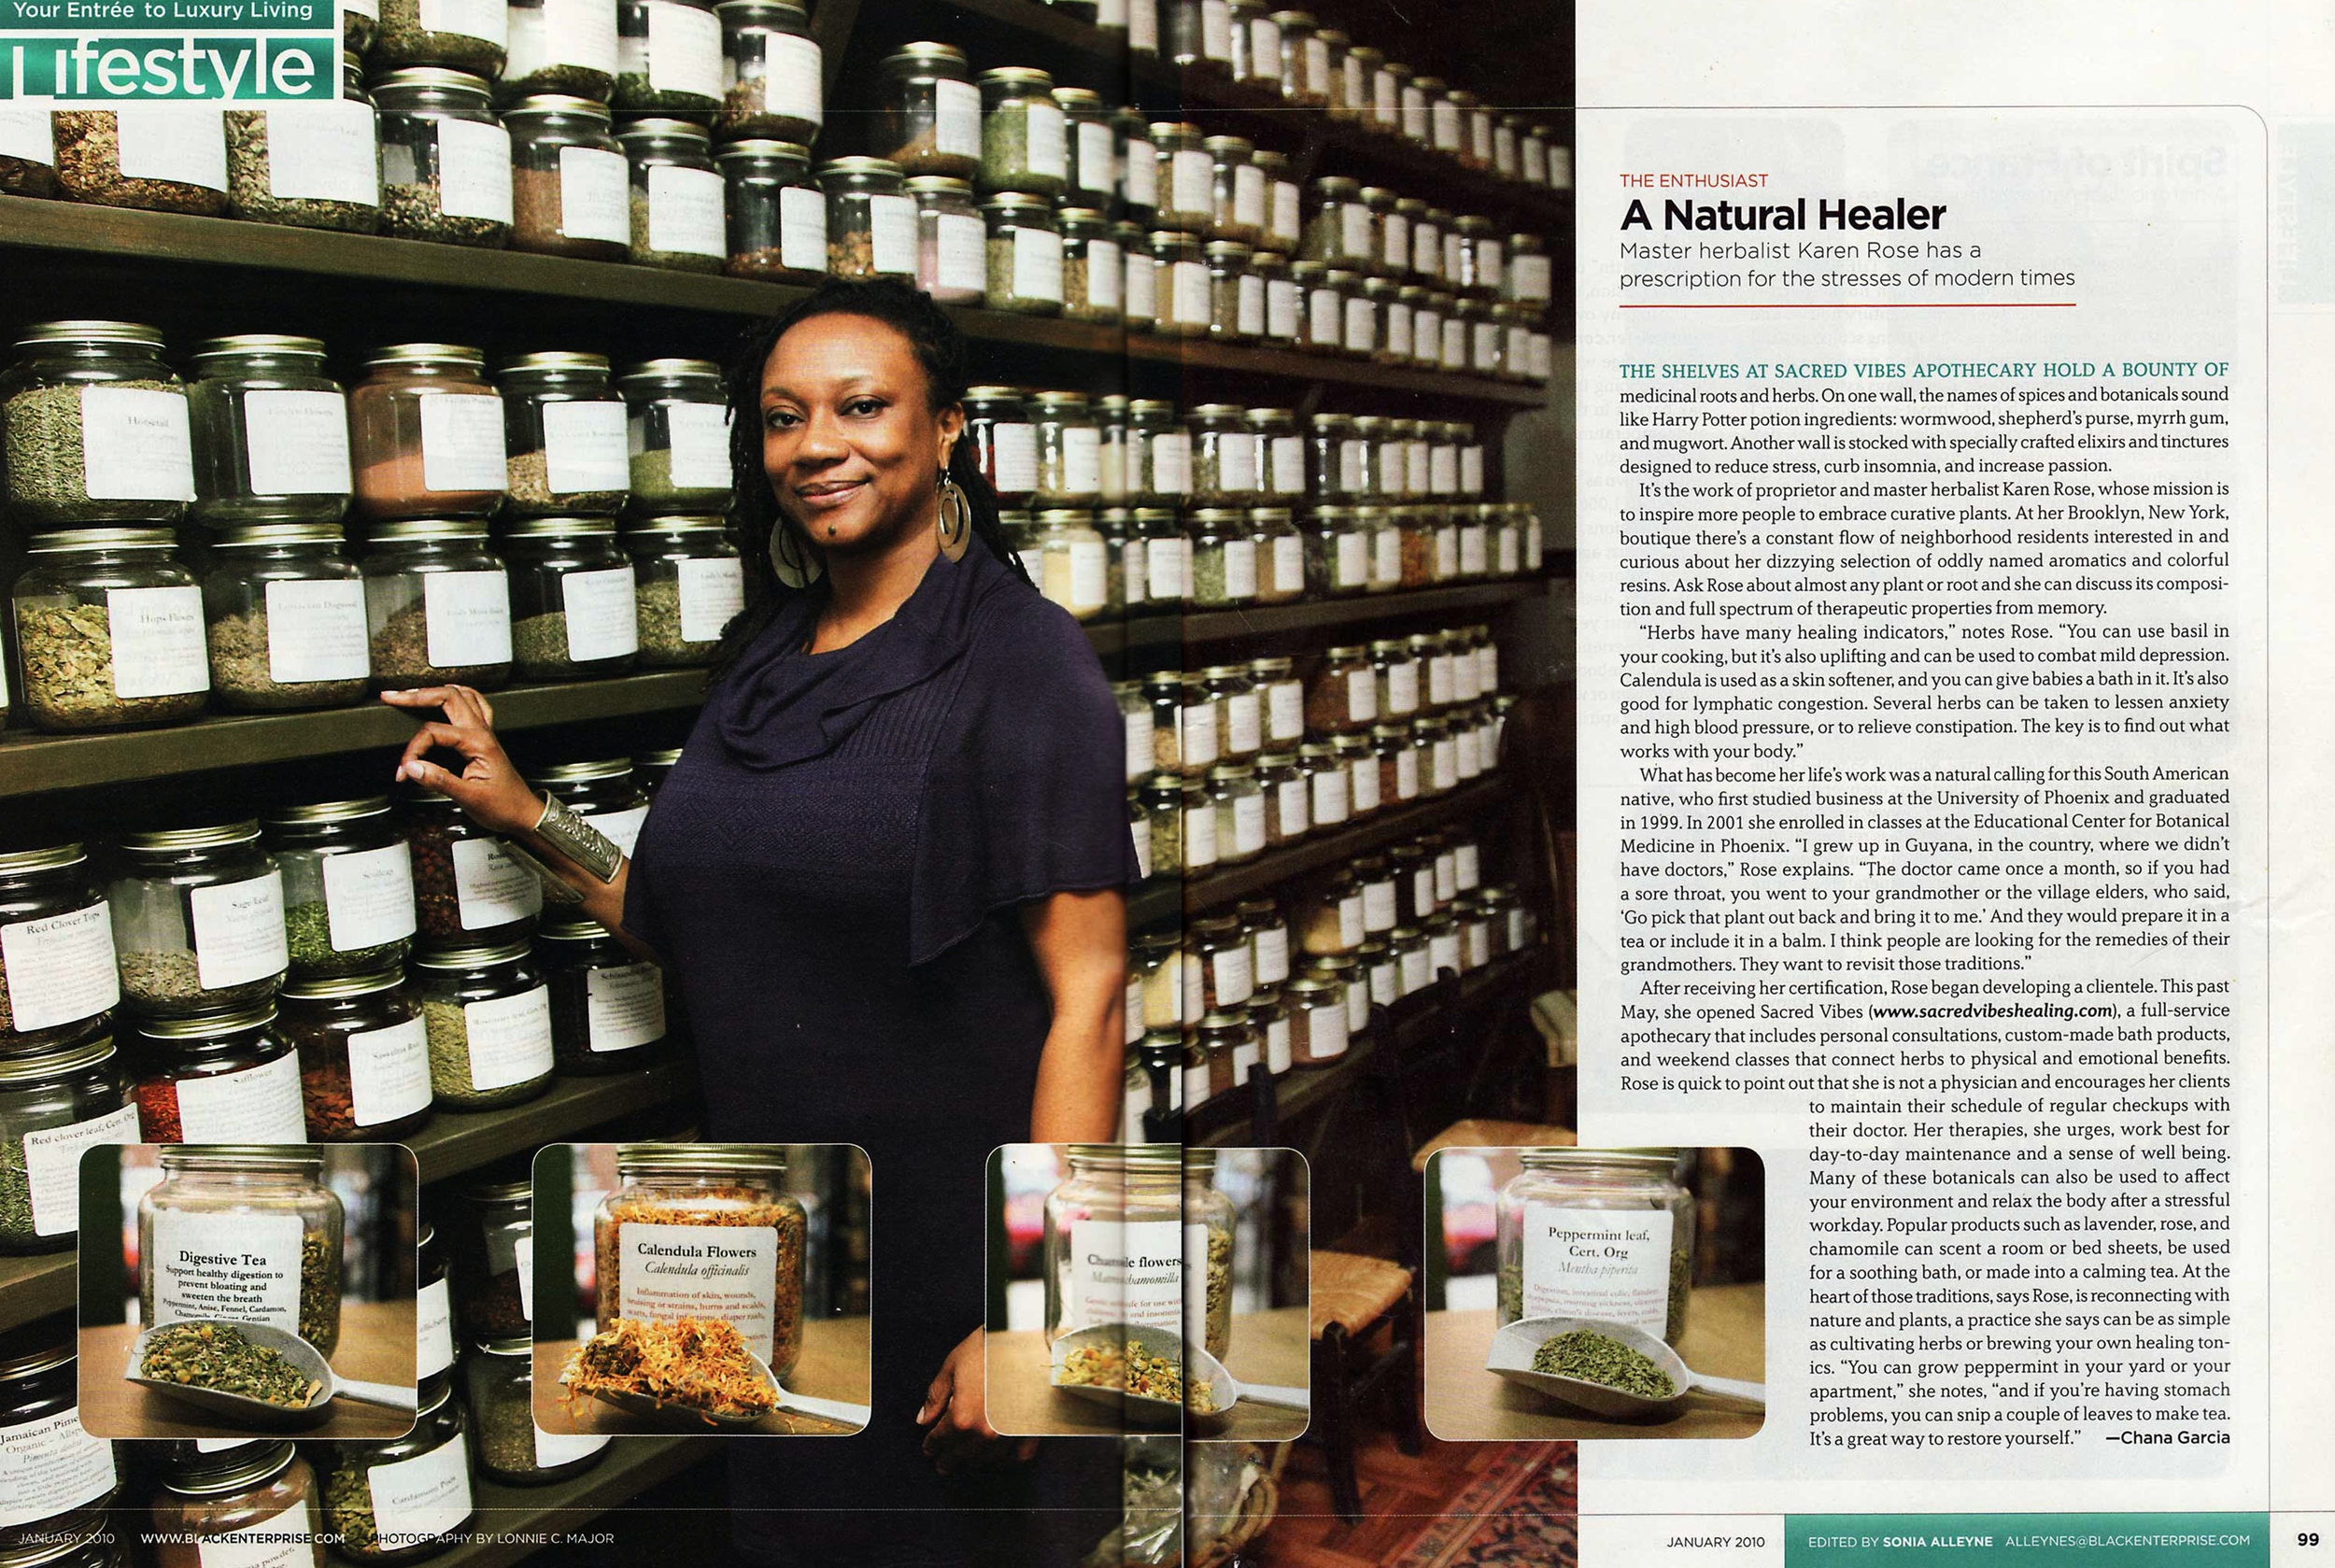 Sacred Vibes featured in Lifestyle Magazine